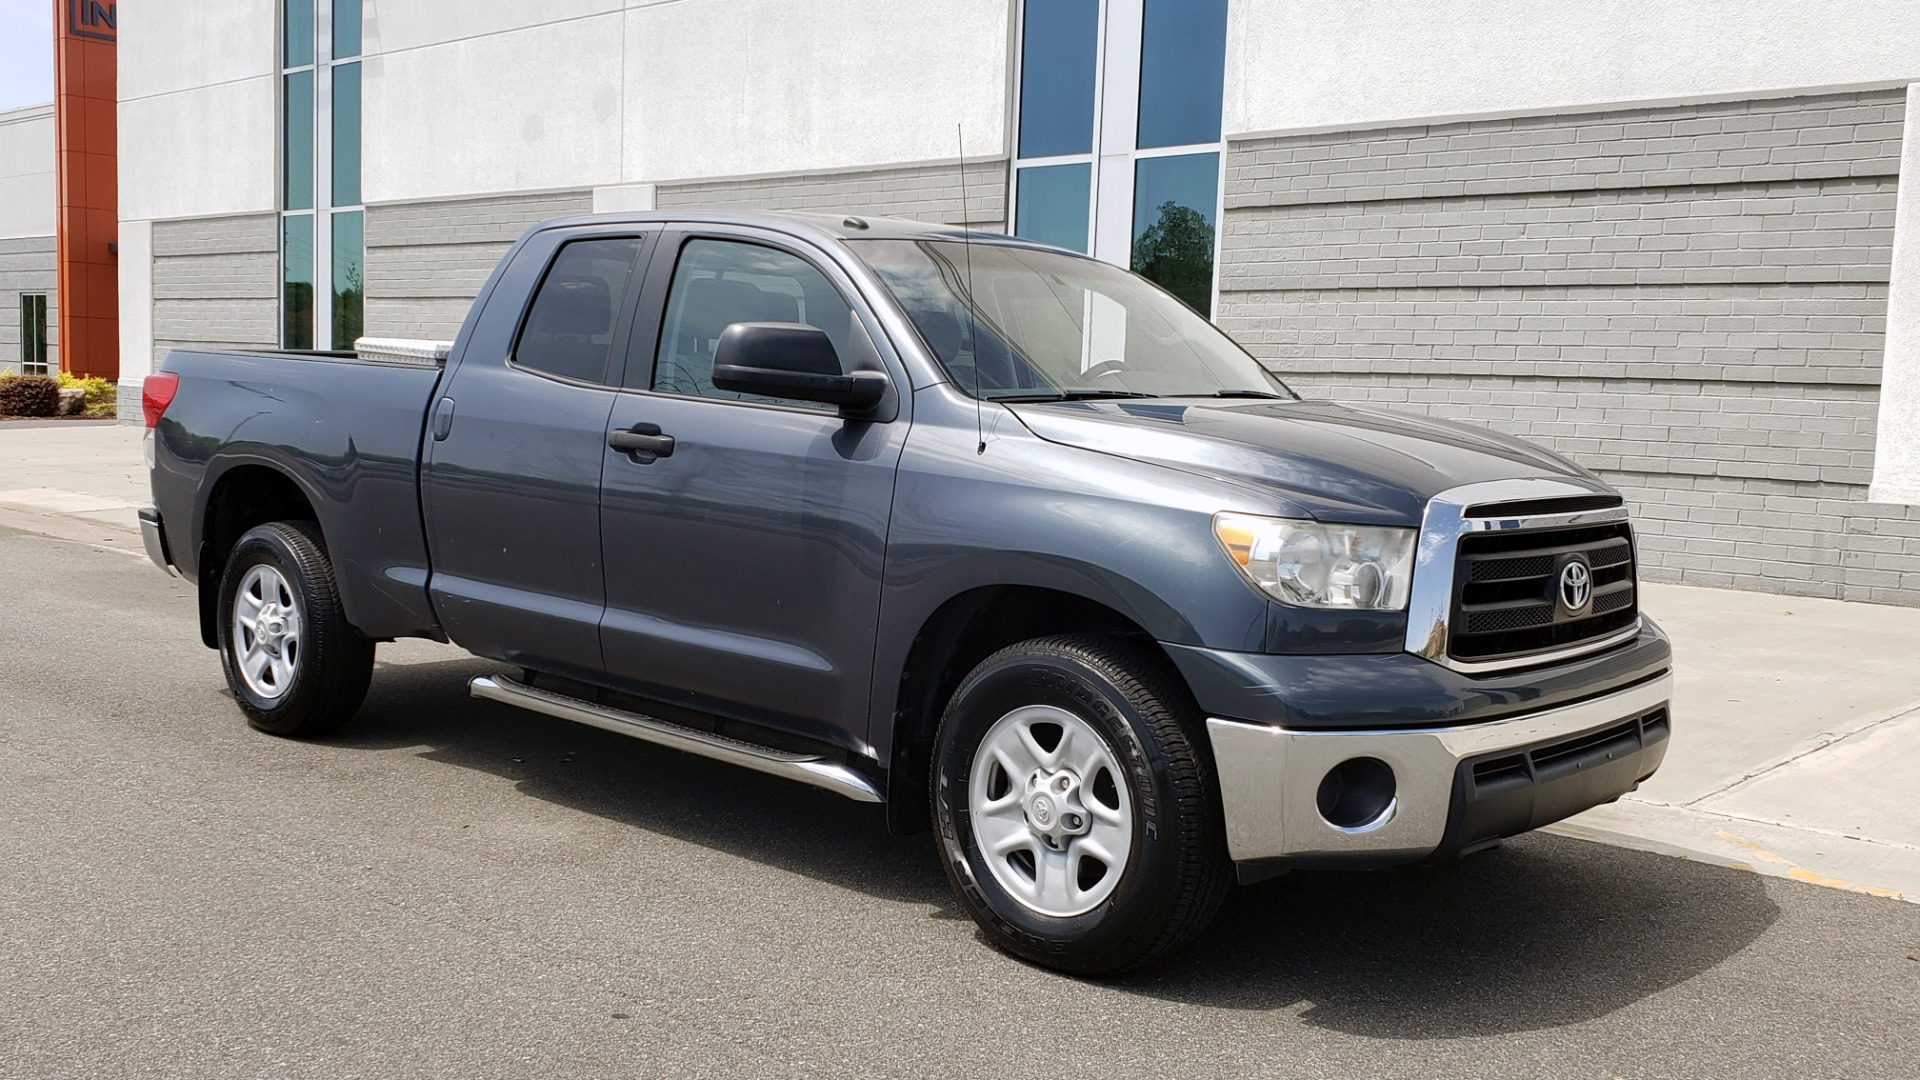 Used 2010 Toyota TUNDRA DOUBLECAB 4X4 / 4.6L V8 / 6-SPD AUTO / TOW PKG / 18IN WHEELS for sale Sold at Formula Imports in Charlotte NC 28227 6